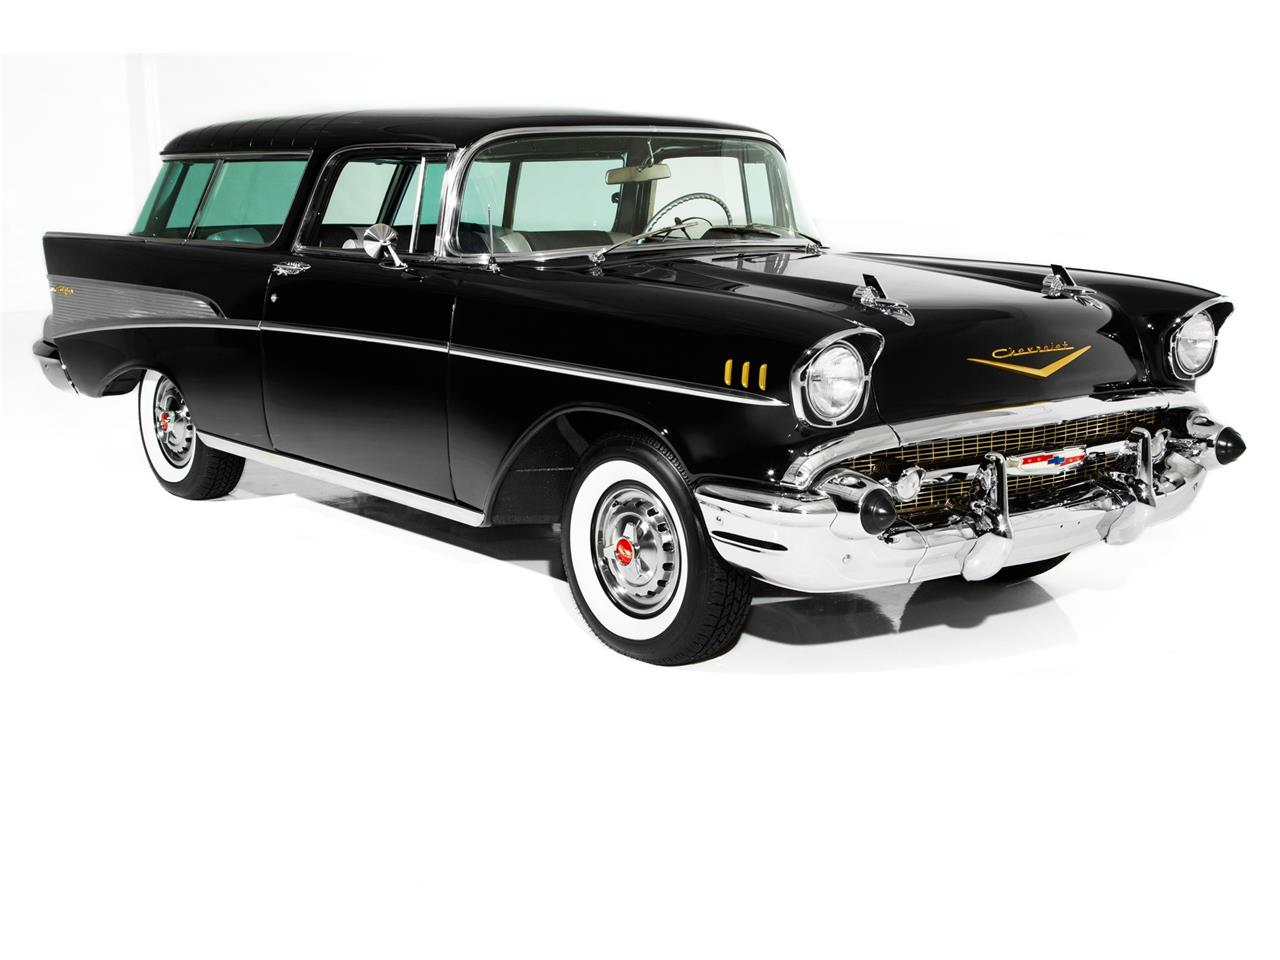 1957 Chevrolet Nomad for sale in Des Moines, IA